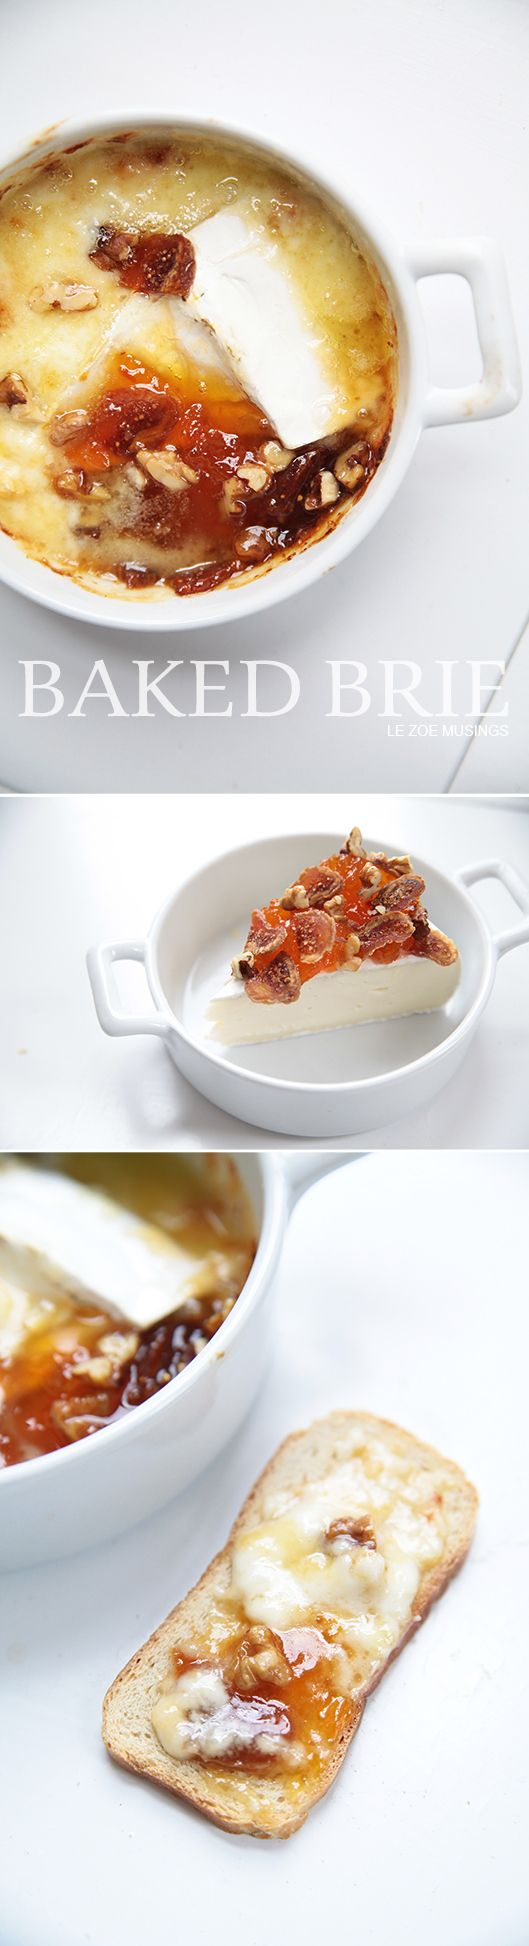 Baked Brie with Apricot Jam, Figs, and Walnuts. Less than 15 mins to make!